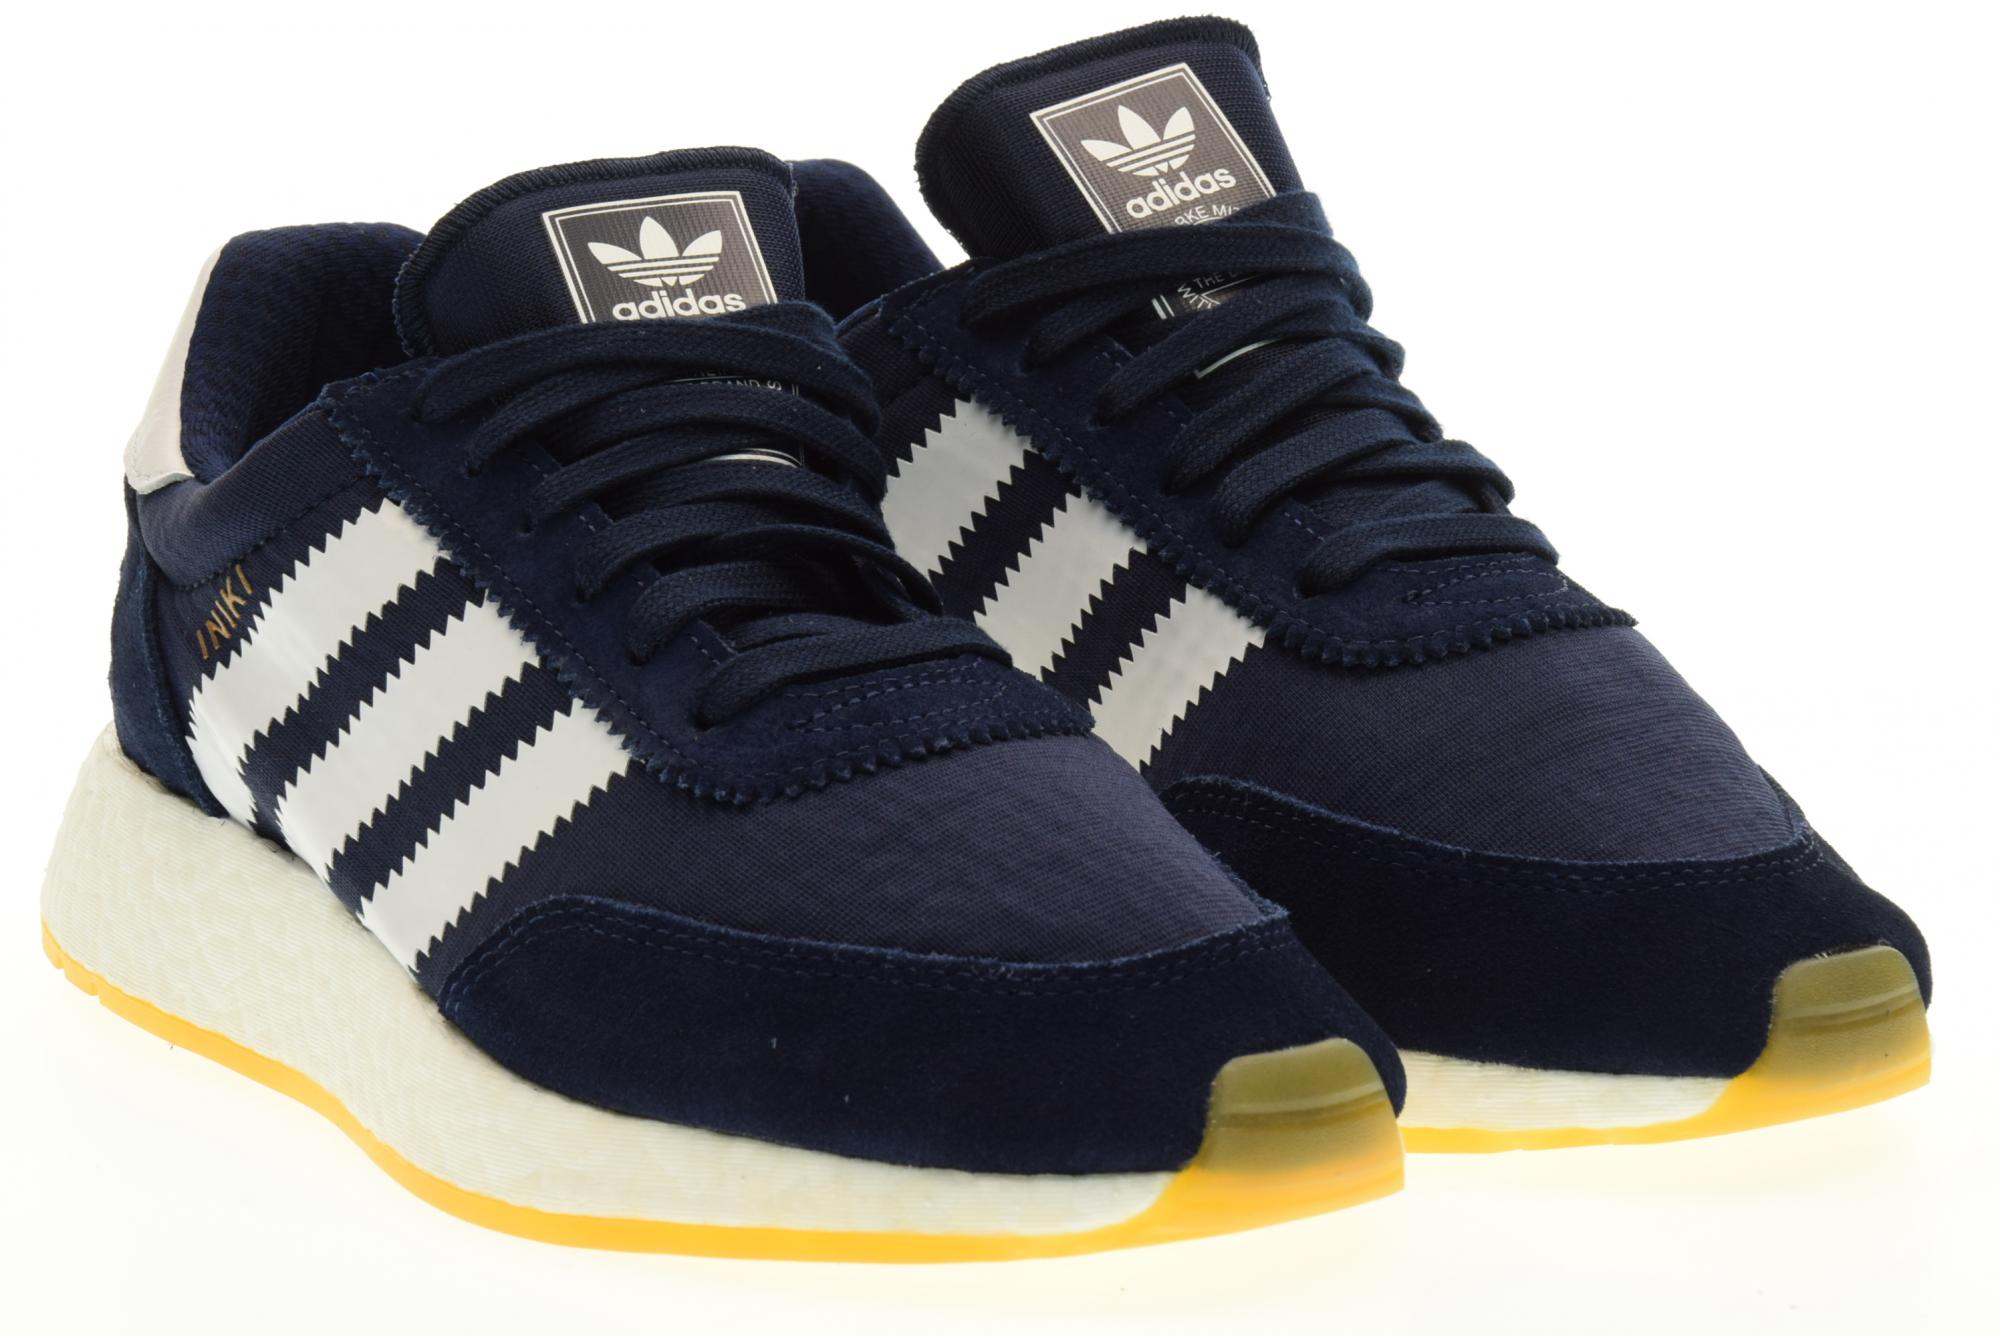 sports shoes 48dea c6278 Adidas scarpe uomo sneakers basse BY9729 INIKI RUNNER A17